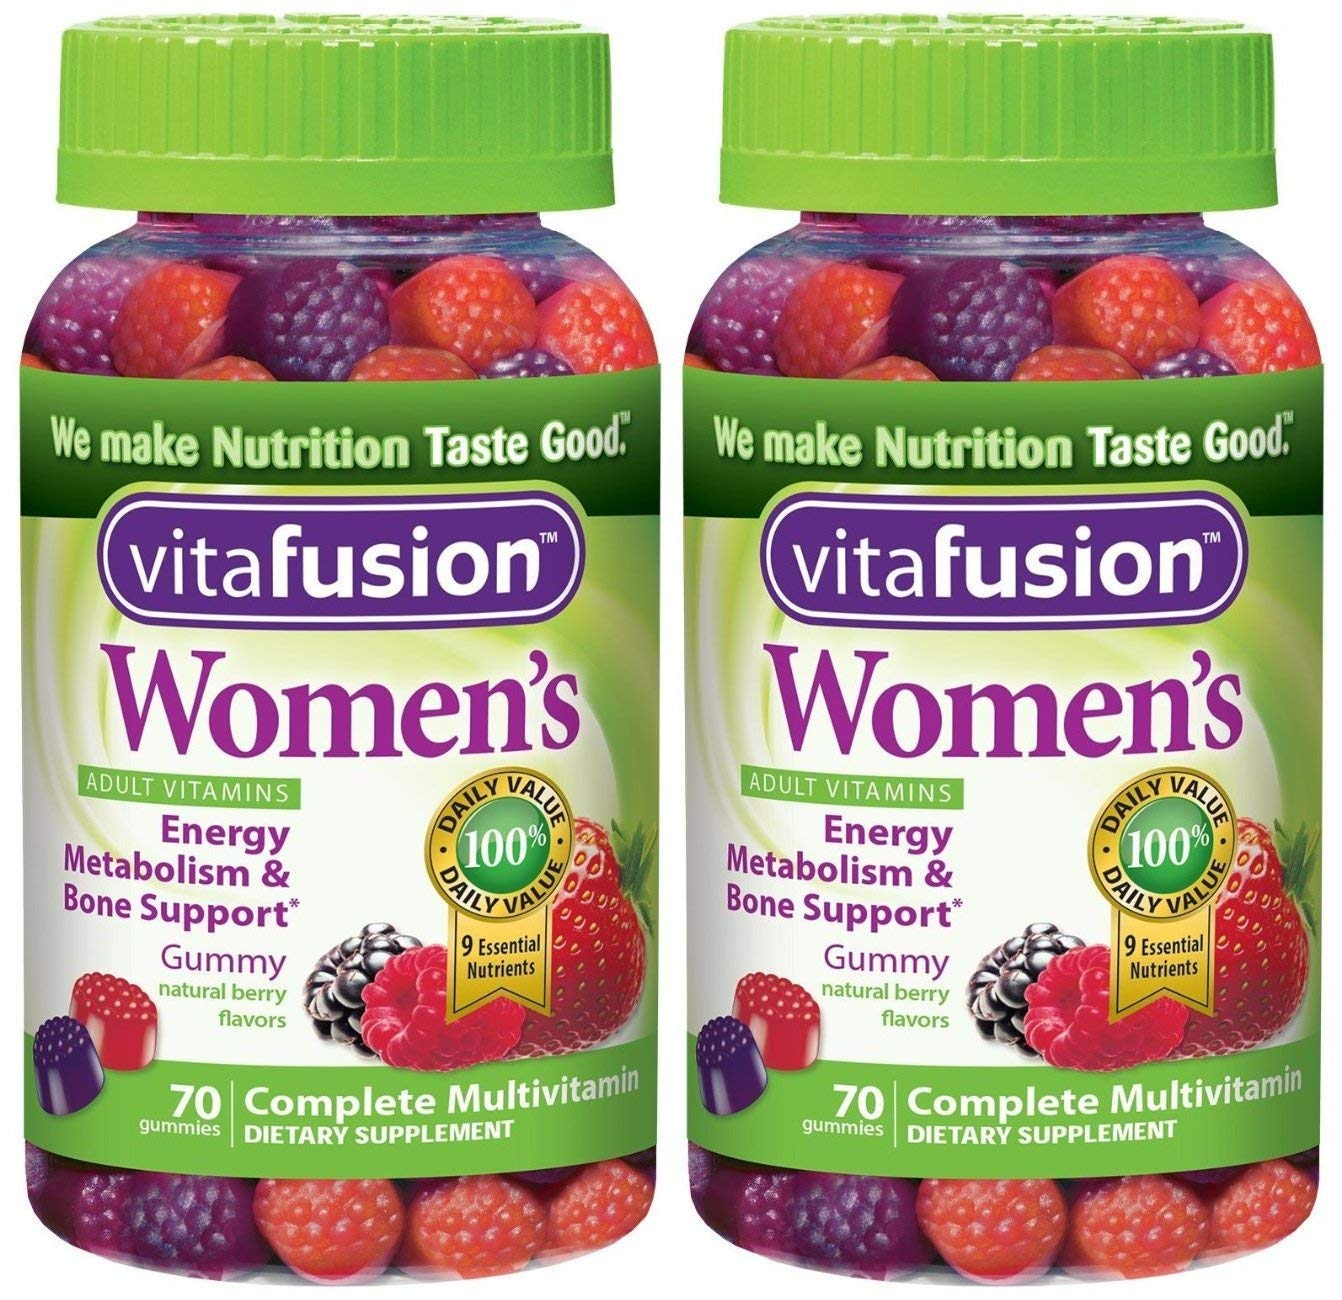 Vitafusion Women s Gummy Vitamins, Natural Berry Flavors, 70 Count Pack of 2